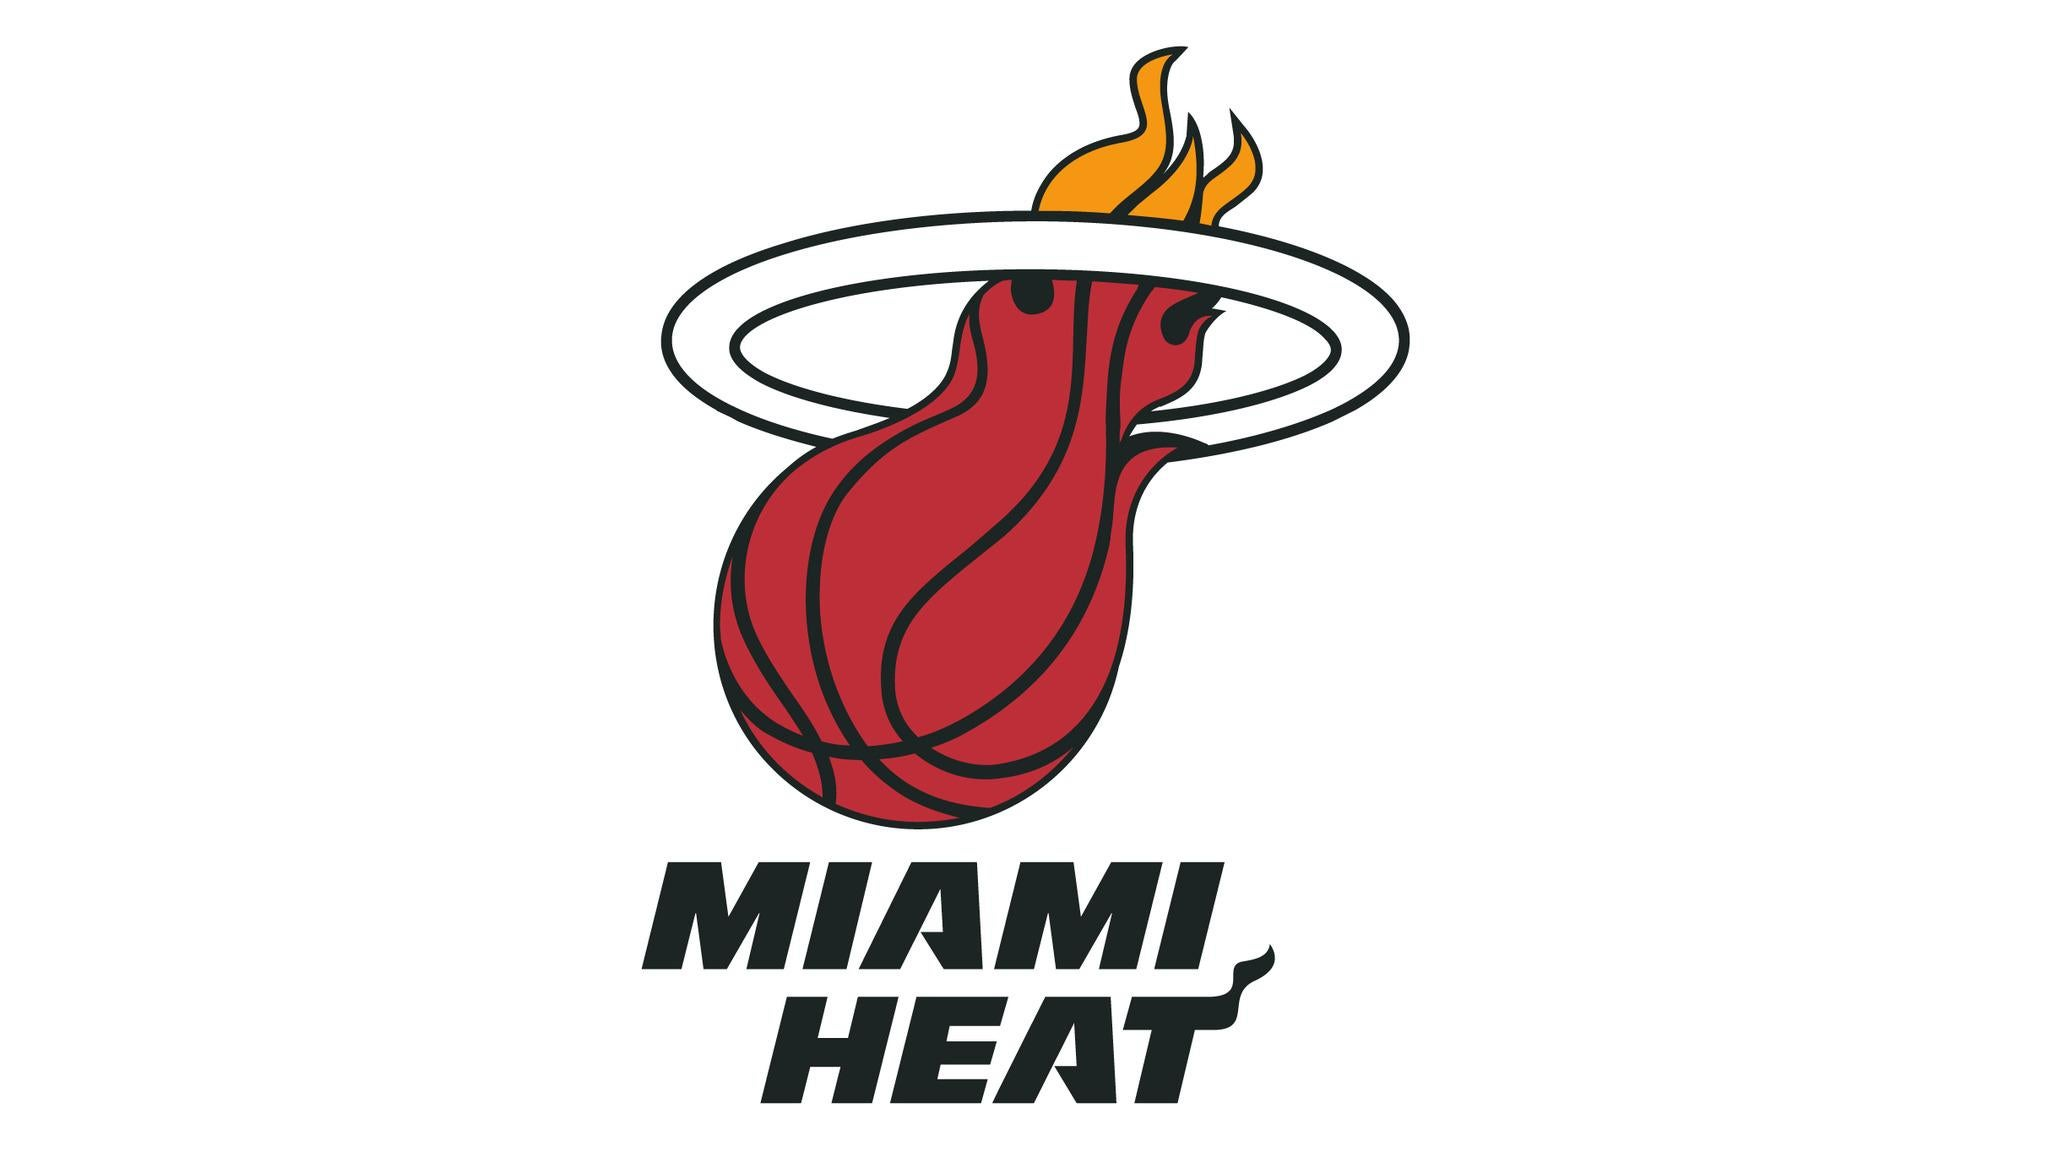 Miami Heat vs. Atlanta Hawks at AmericanAirlines Arena